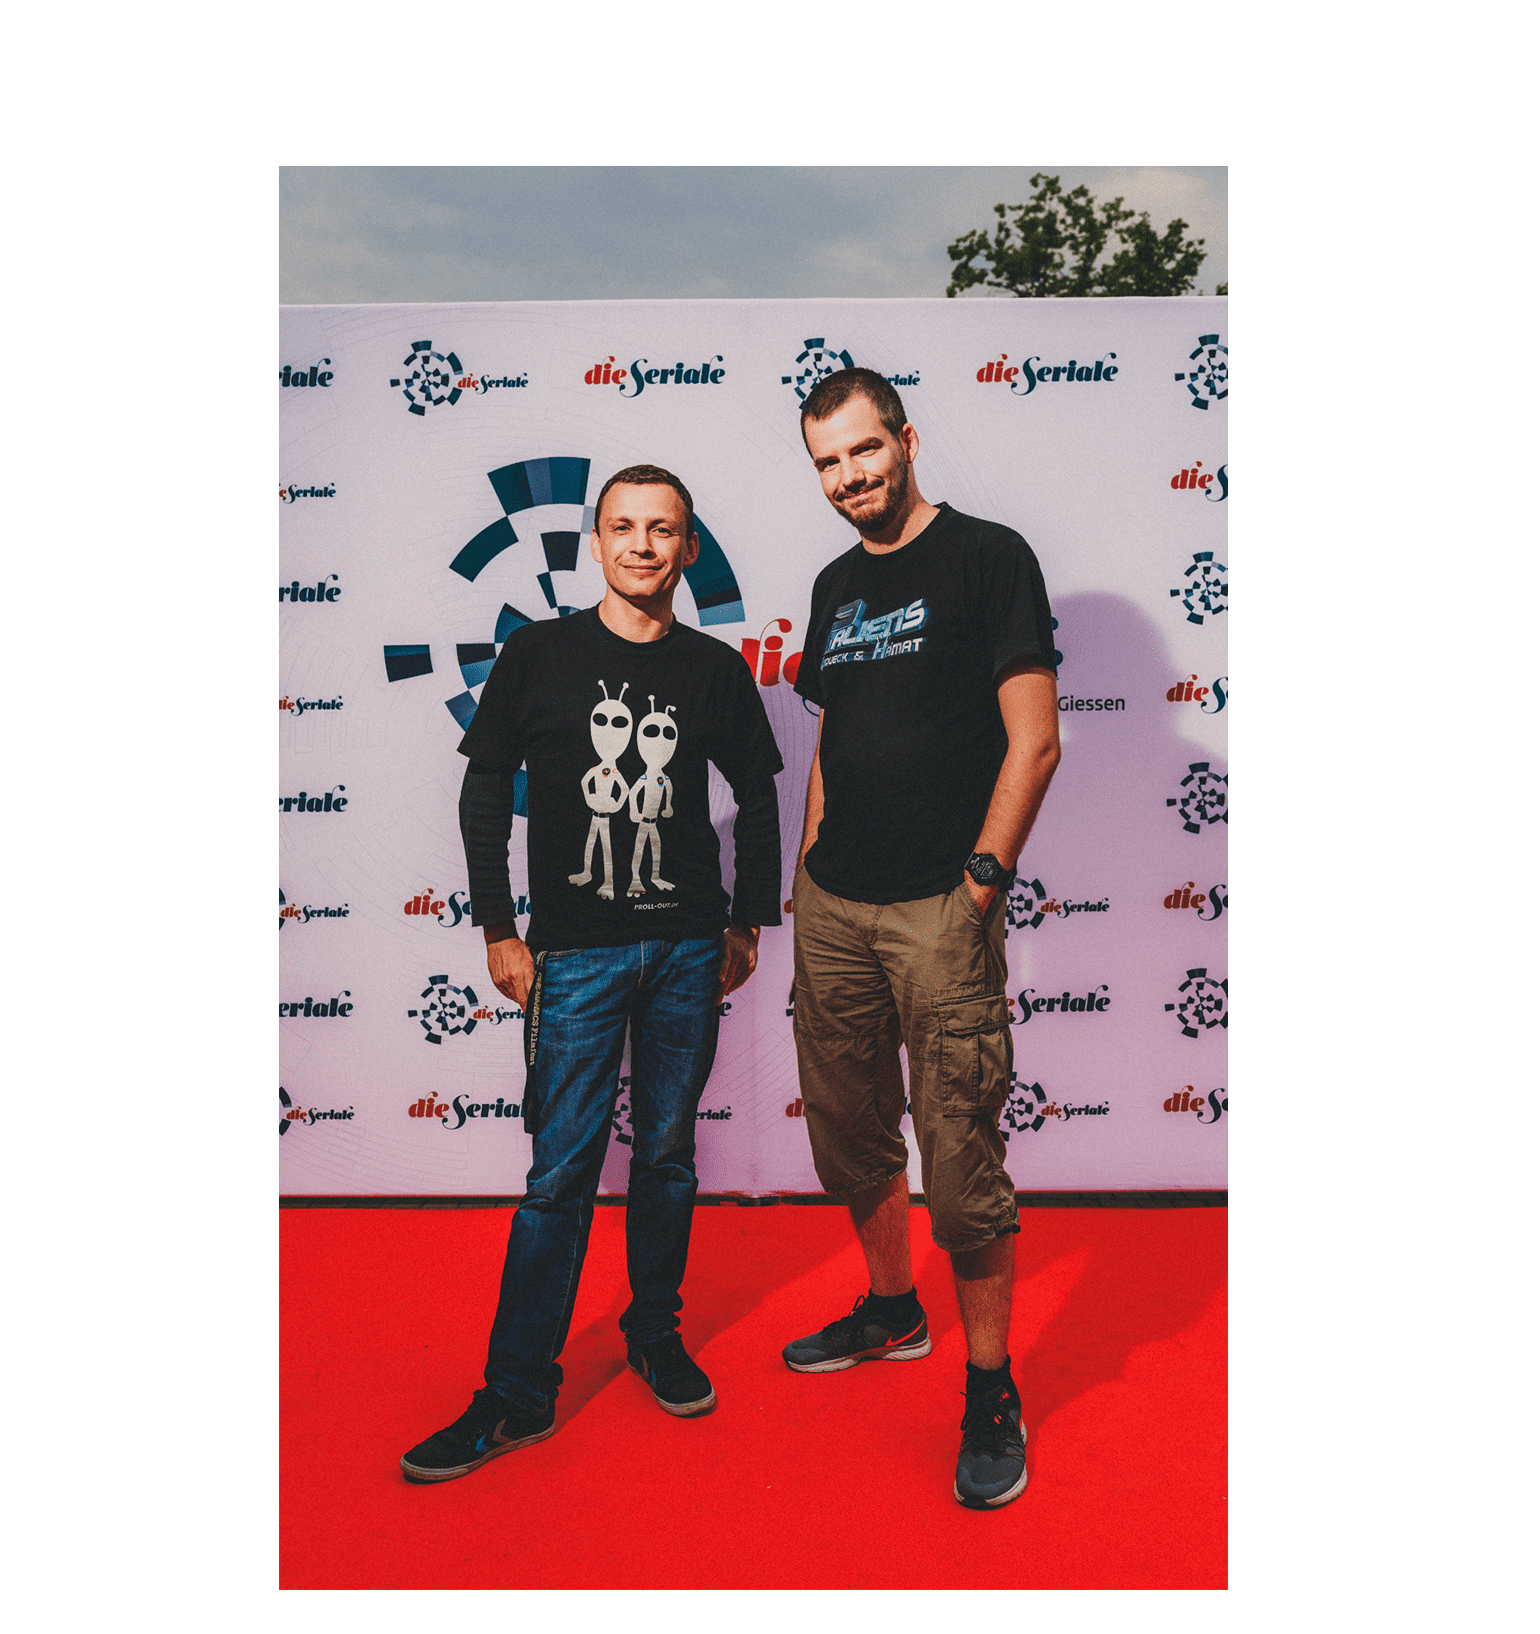 """BEST ANIMATION/PUPPETRY - Konrad Simon, producer and Thomas Zeug, creator and director of """"2 Aliens"""""""